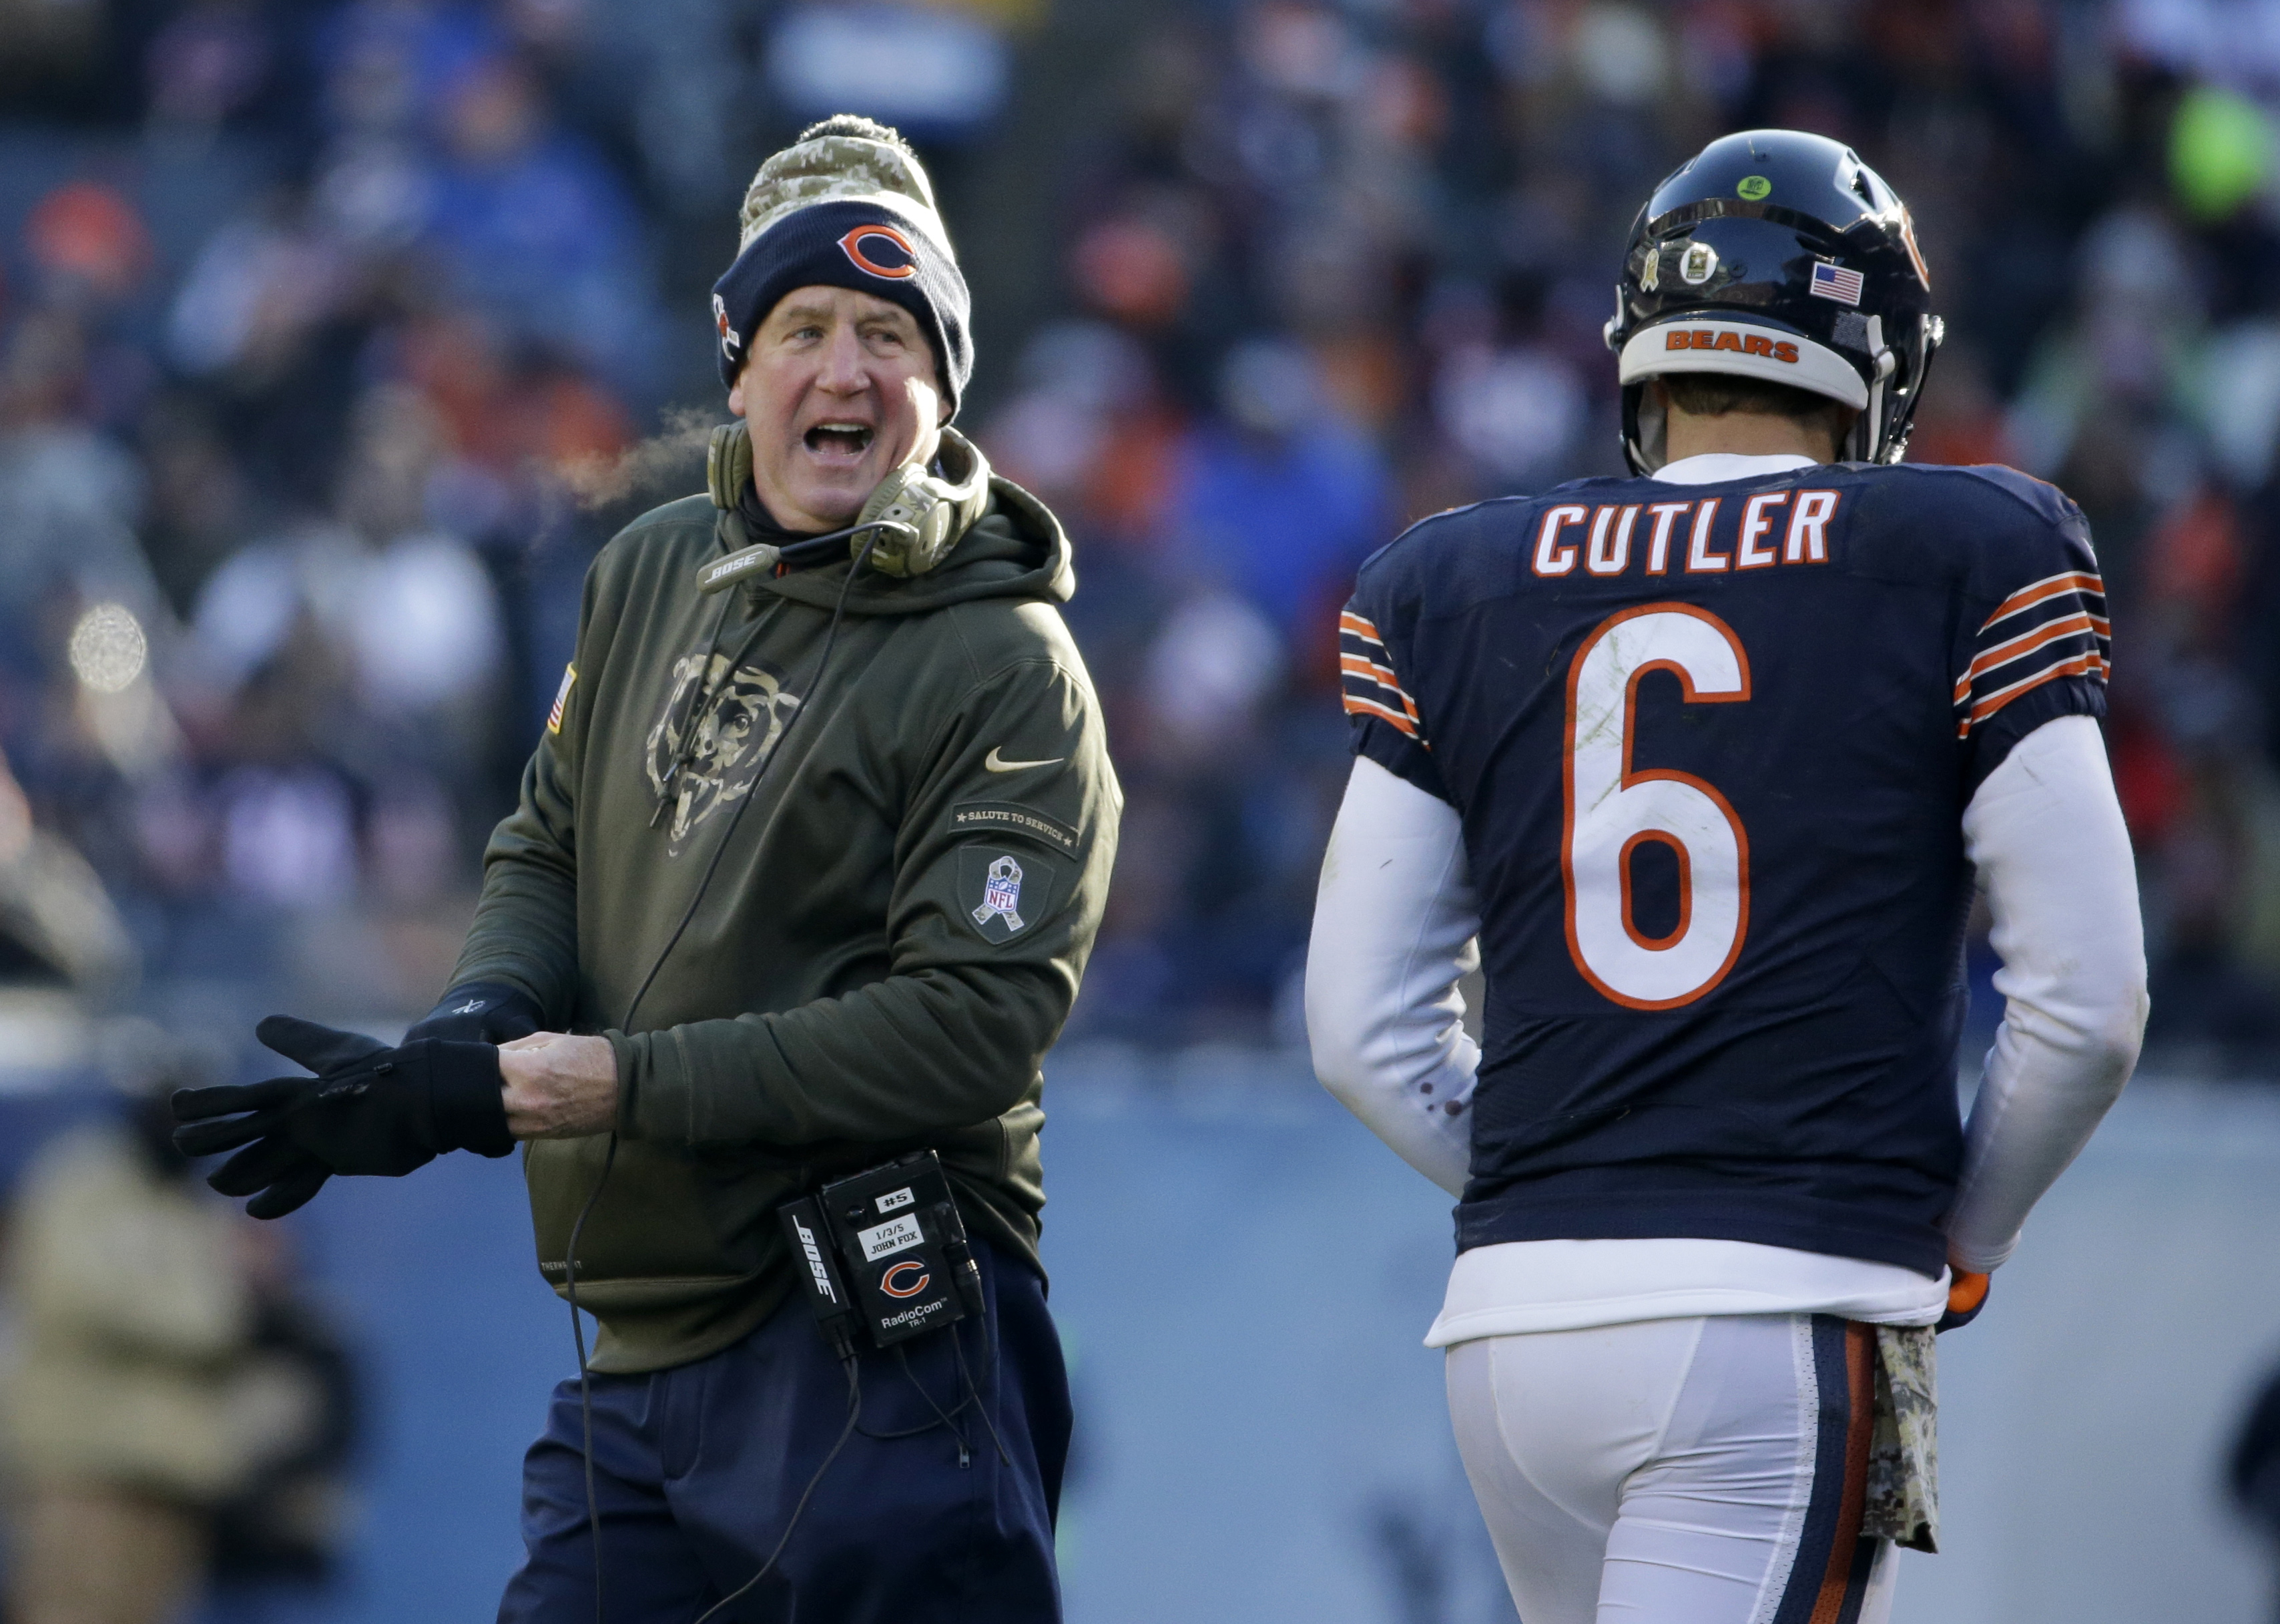 Chicago Bears head coach John Fox talks to quarterback Jay Cutler (6) as Cutler walks to the bench during the second half of an NFL football game against the Denver Broncos, Sunday, Nov. 22, 2015, in Chicago. (AP Photo/Nam Y. Huh)